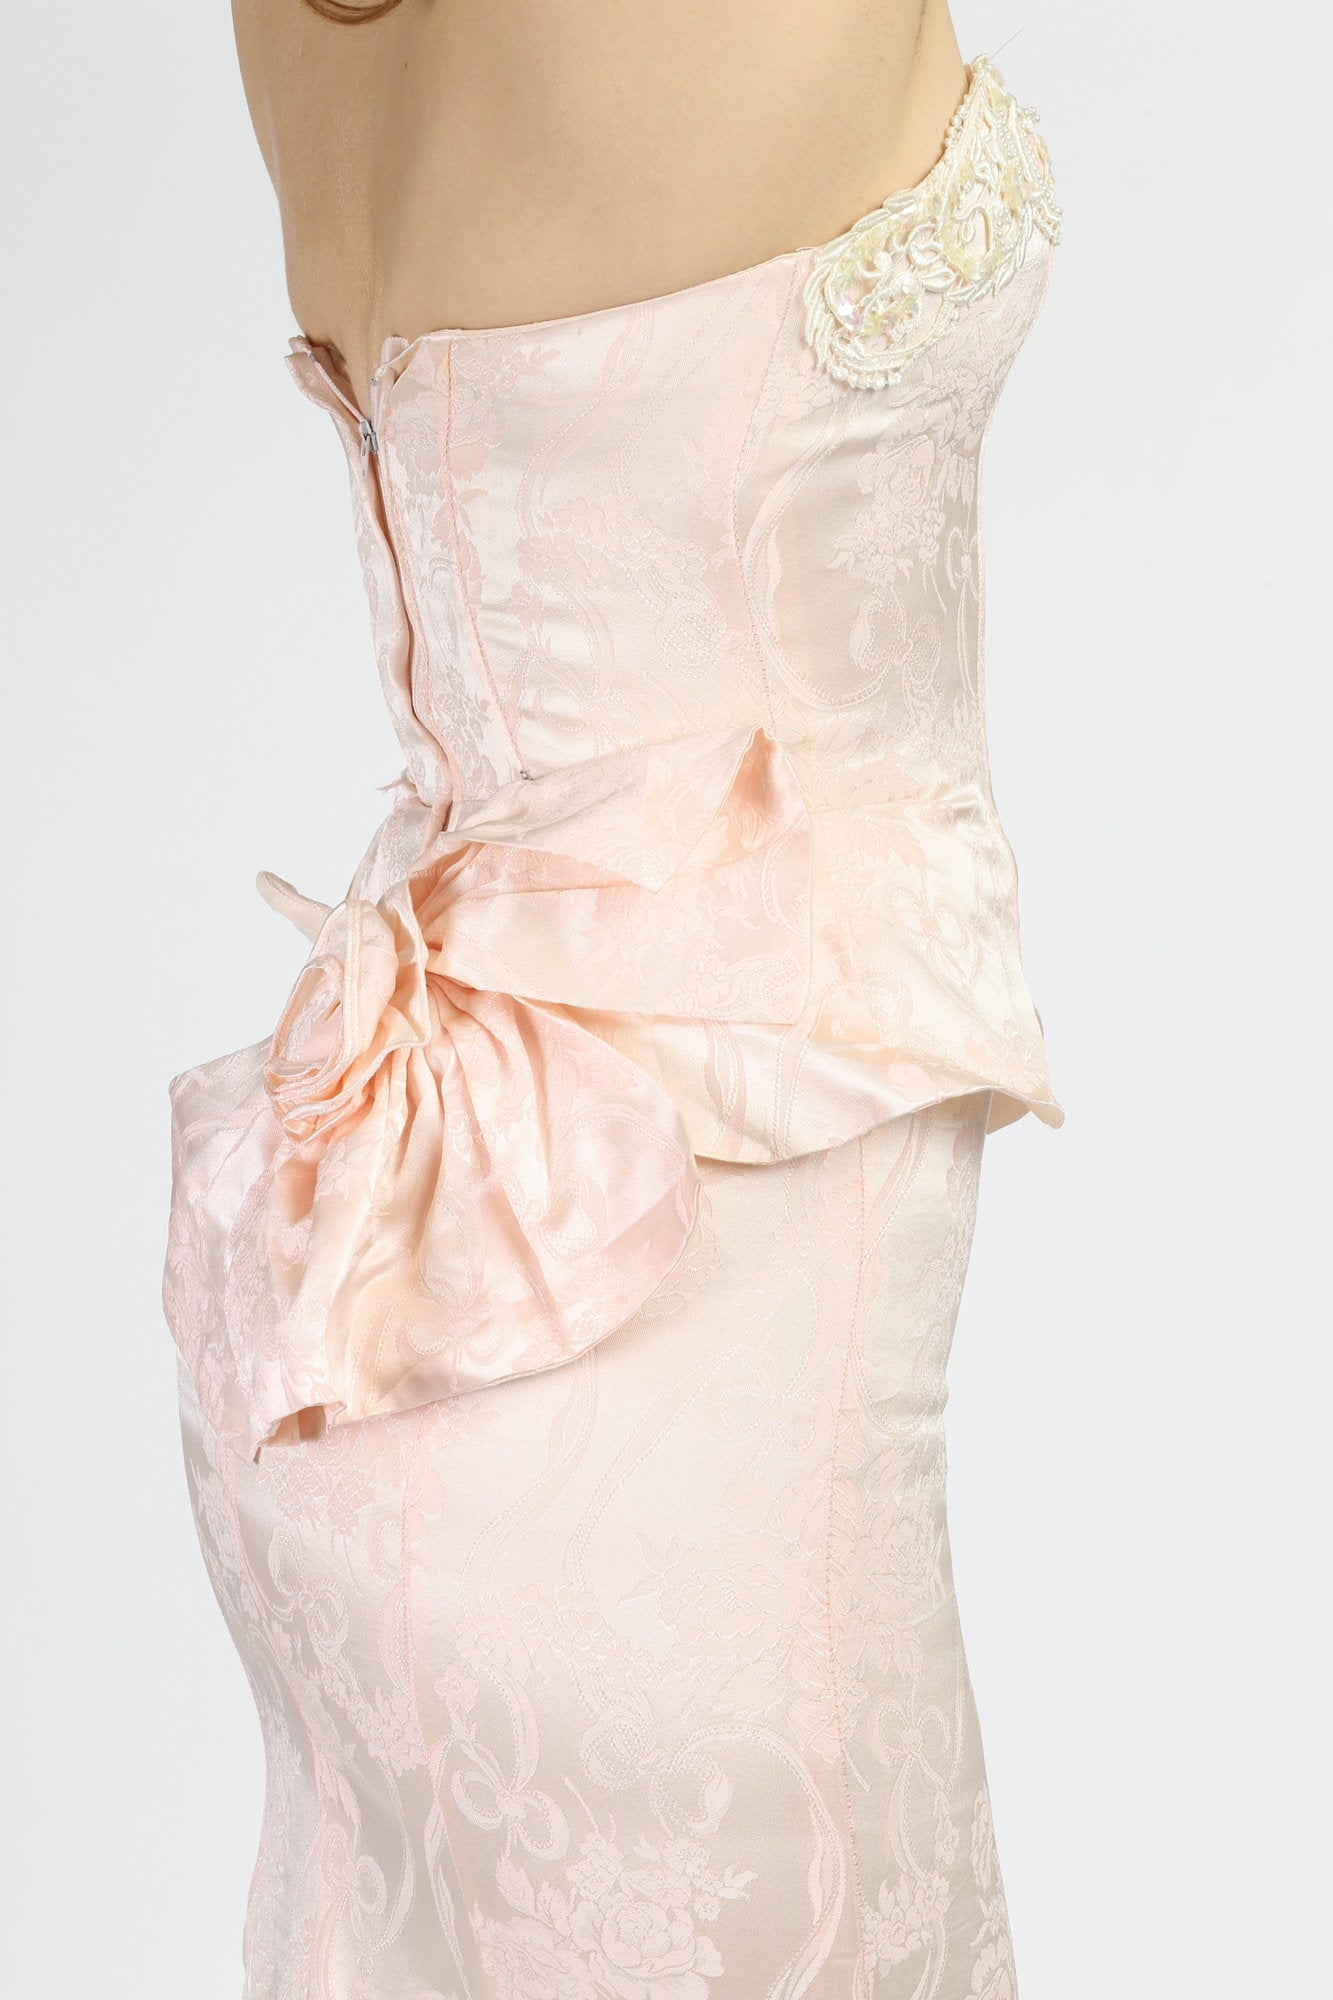 80s Strapless Baby Pink Scott McClintock Dress - Extra Small